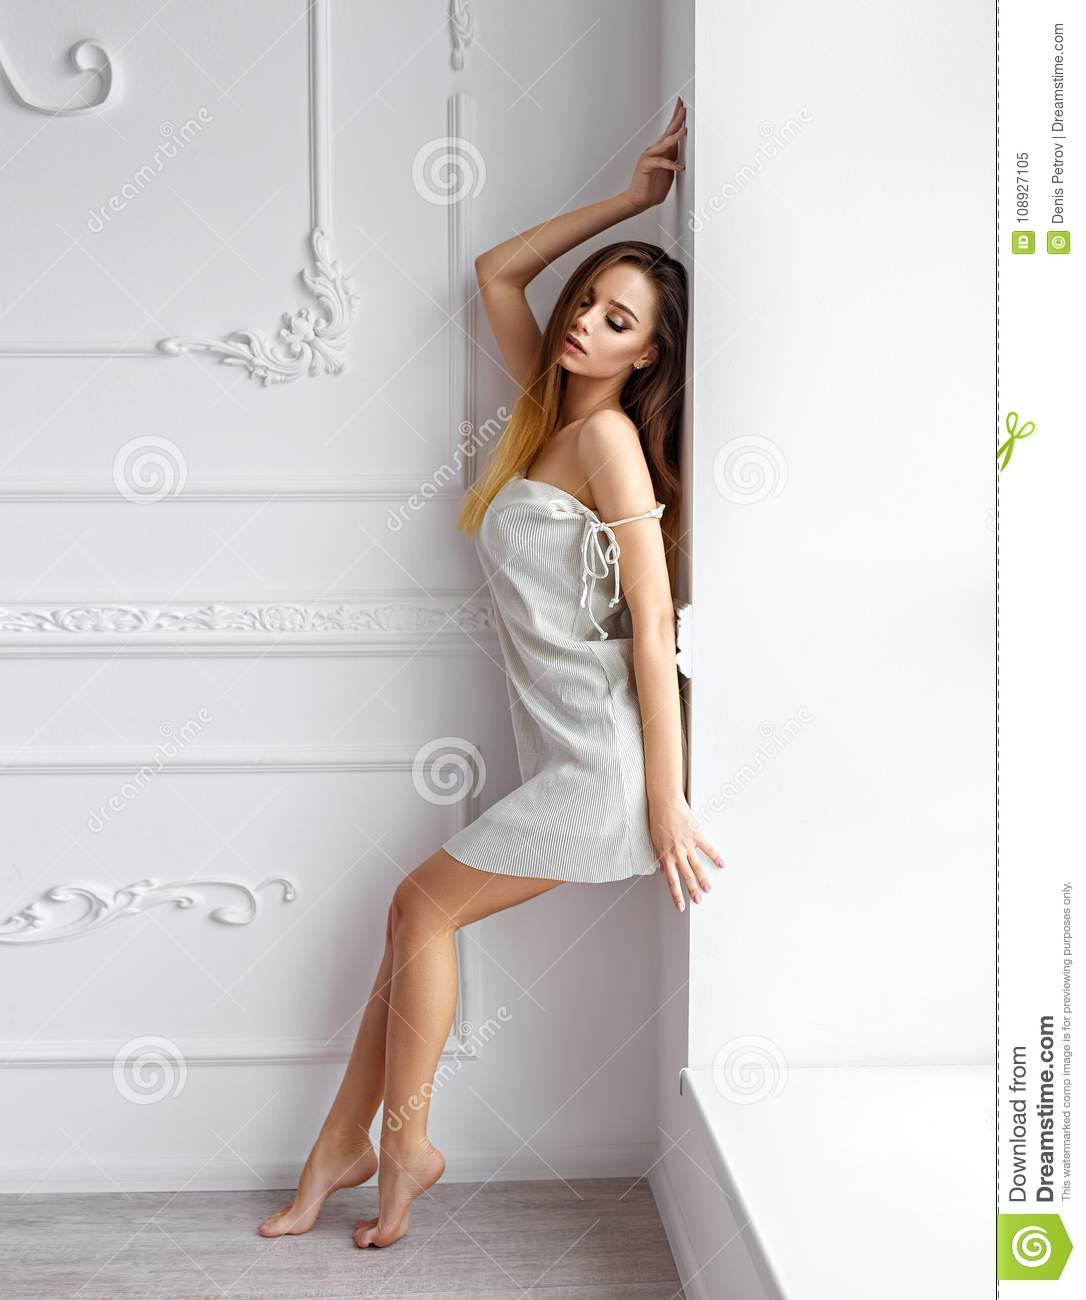 https://thumbs.dreamstime.com/z/perfect-girl-sexy-white-dress-young-108927105.jpg